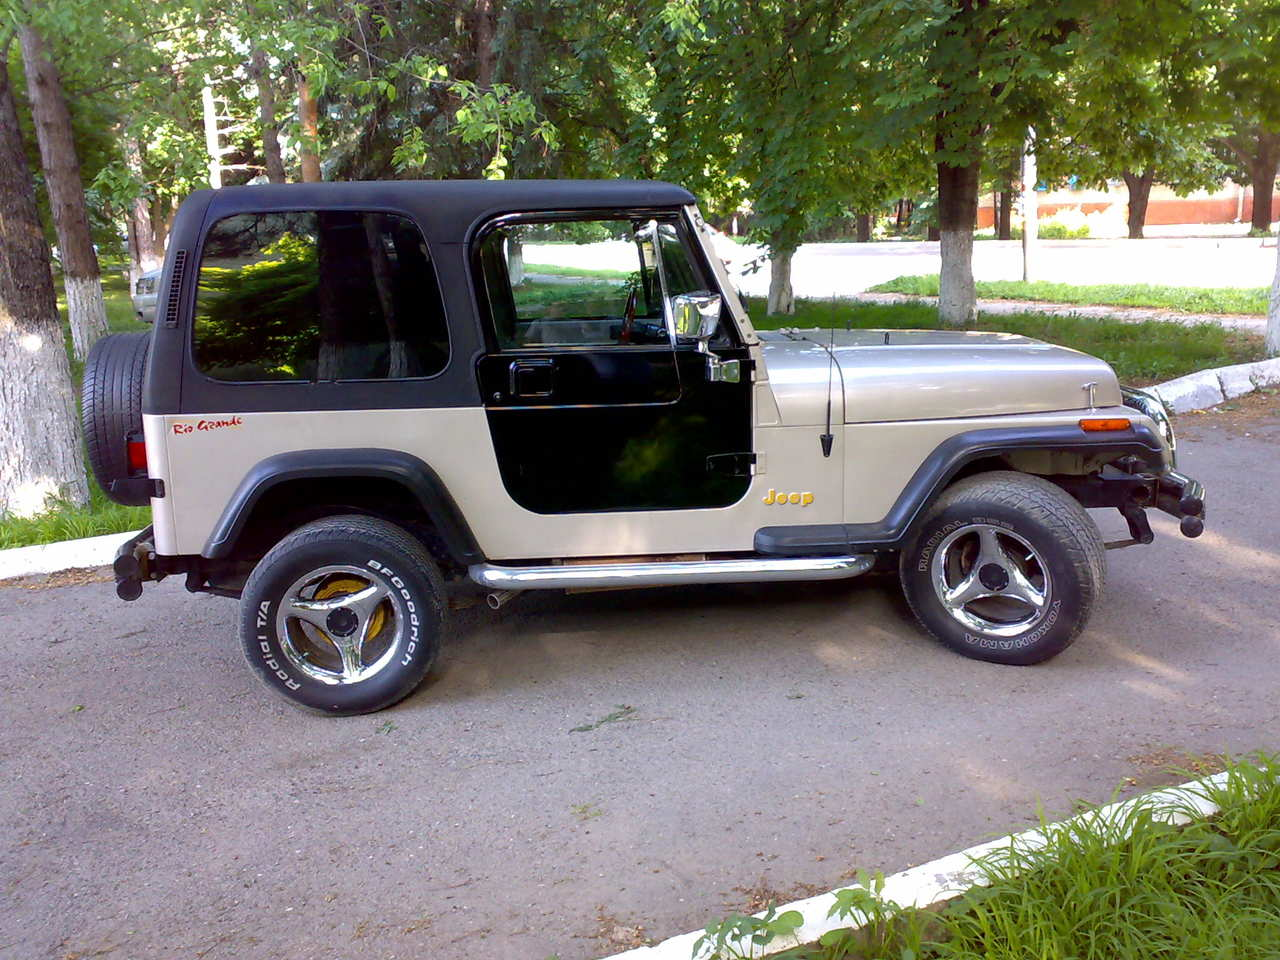 Jeep Wrangler For Sale Ohio 1995 JEEP Wrangler Pictures, 2.5l., Gasoline, Automatic For Sale